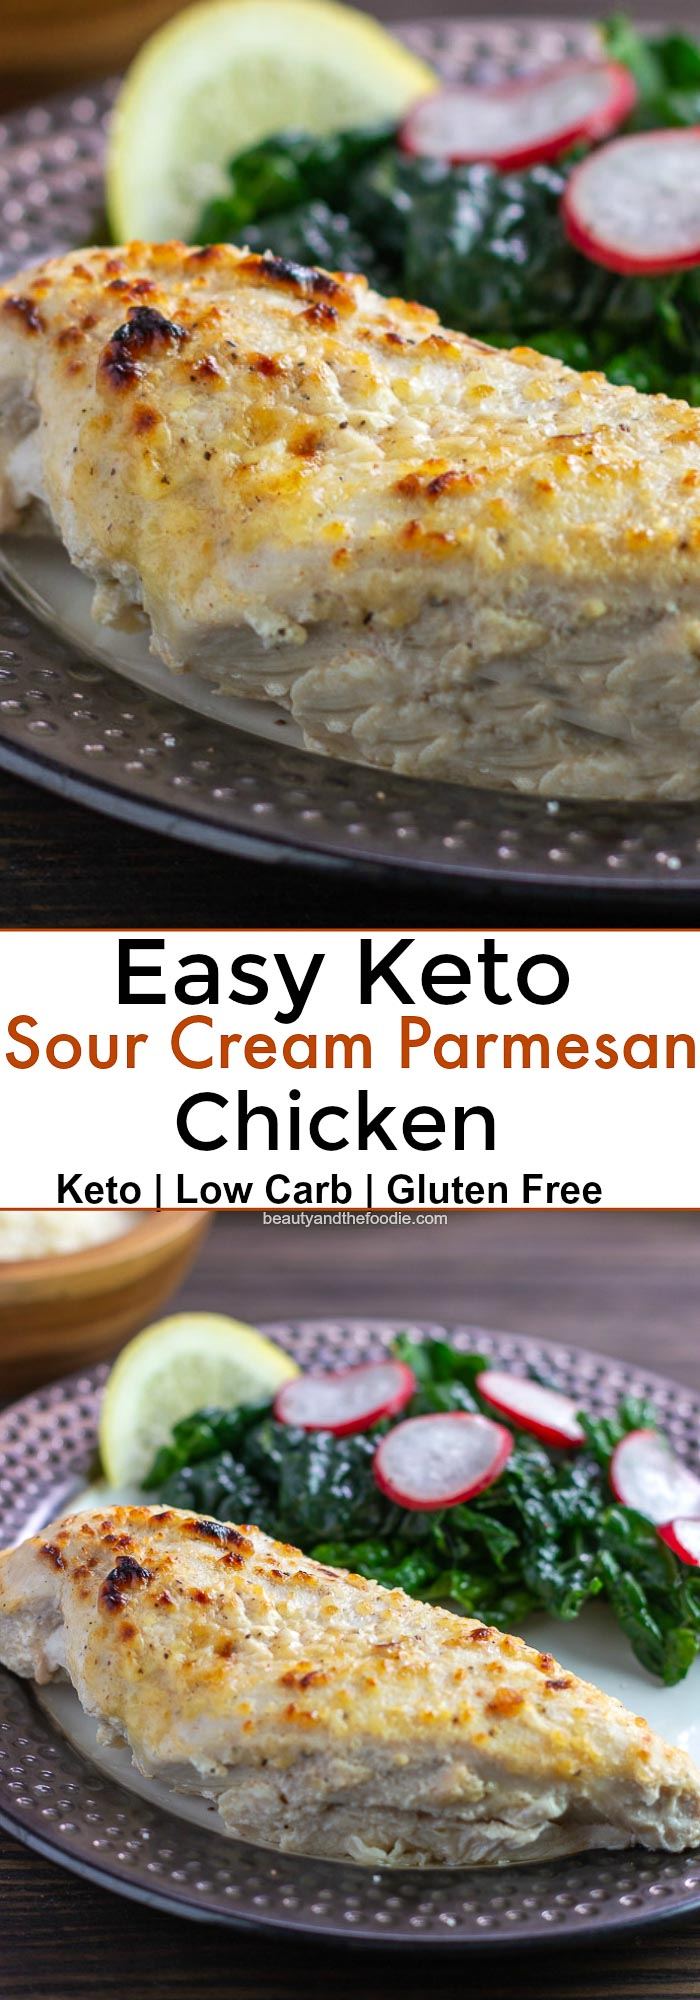 Keto Sour Cream Parmesan Chicken Beauty And The Foodie Low Carb Recipes Dessert Chicken Parmesan Recipes Sour Cream Recipes